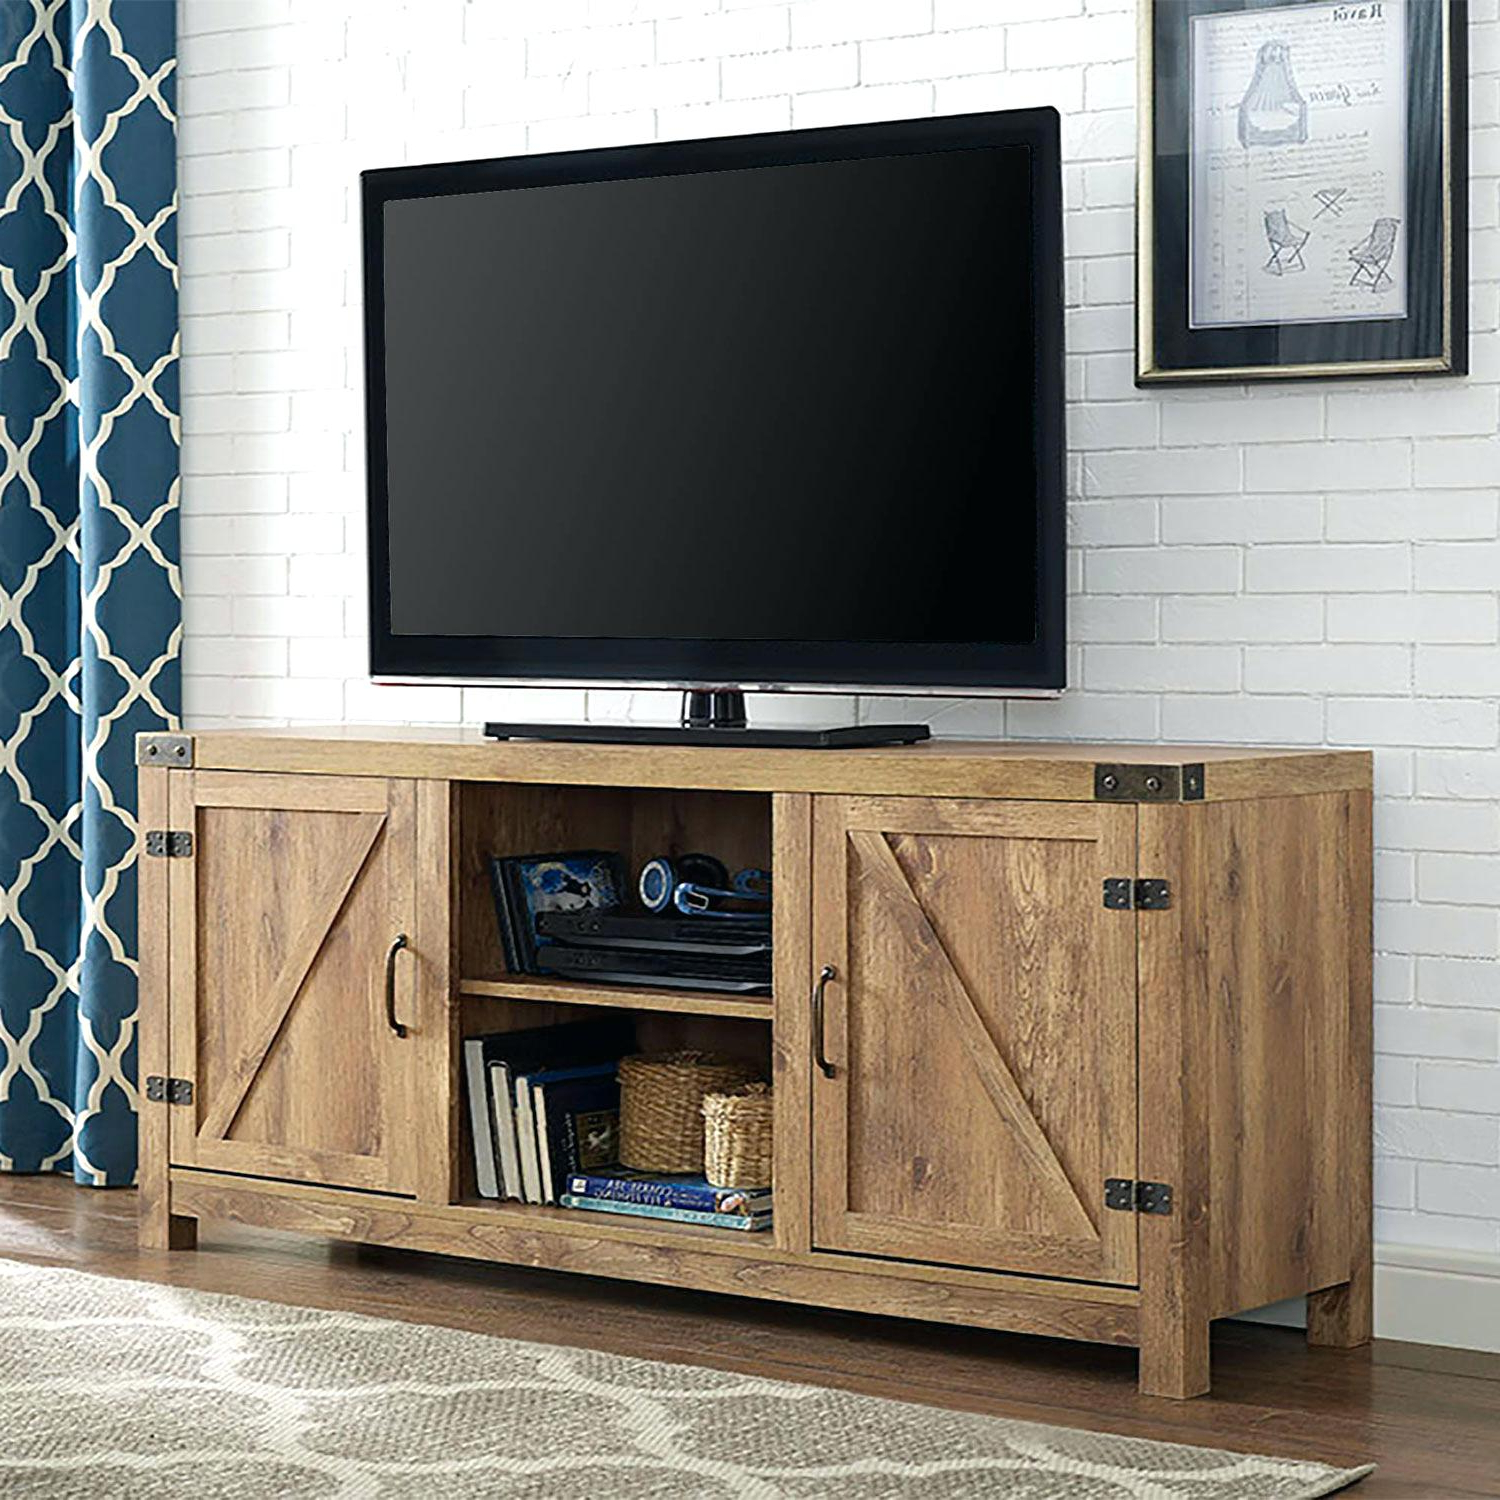 Favorite Rustic Tv Stands For Sale S Wood Pine Stand – Kcscienceinc In Rustic Tv Stands For Sale (Gallery 8 of 20)